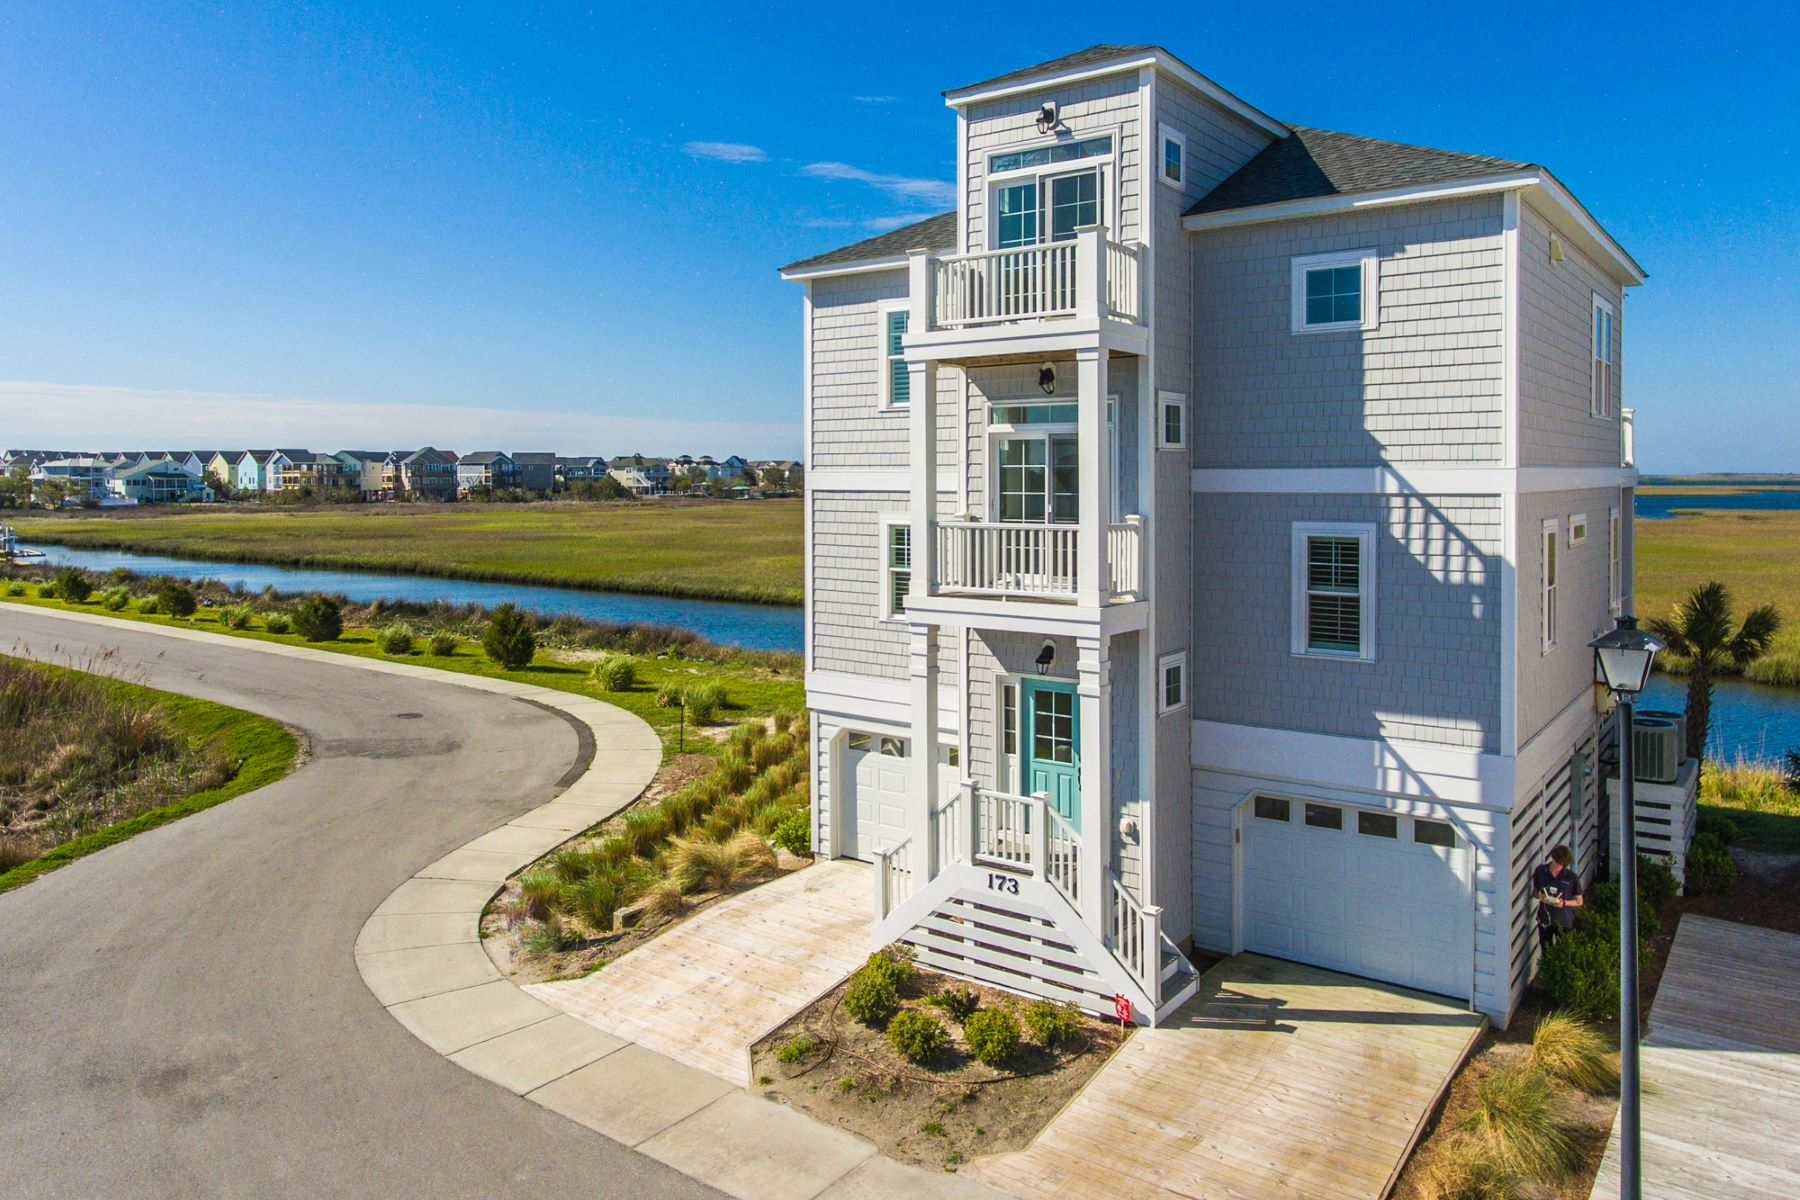 Single Family Home for Active at Contemporary Canal-Front Home on Topsail Island 173 Atkinson Rd Surf City, North Carolina 28445 United States